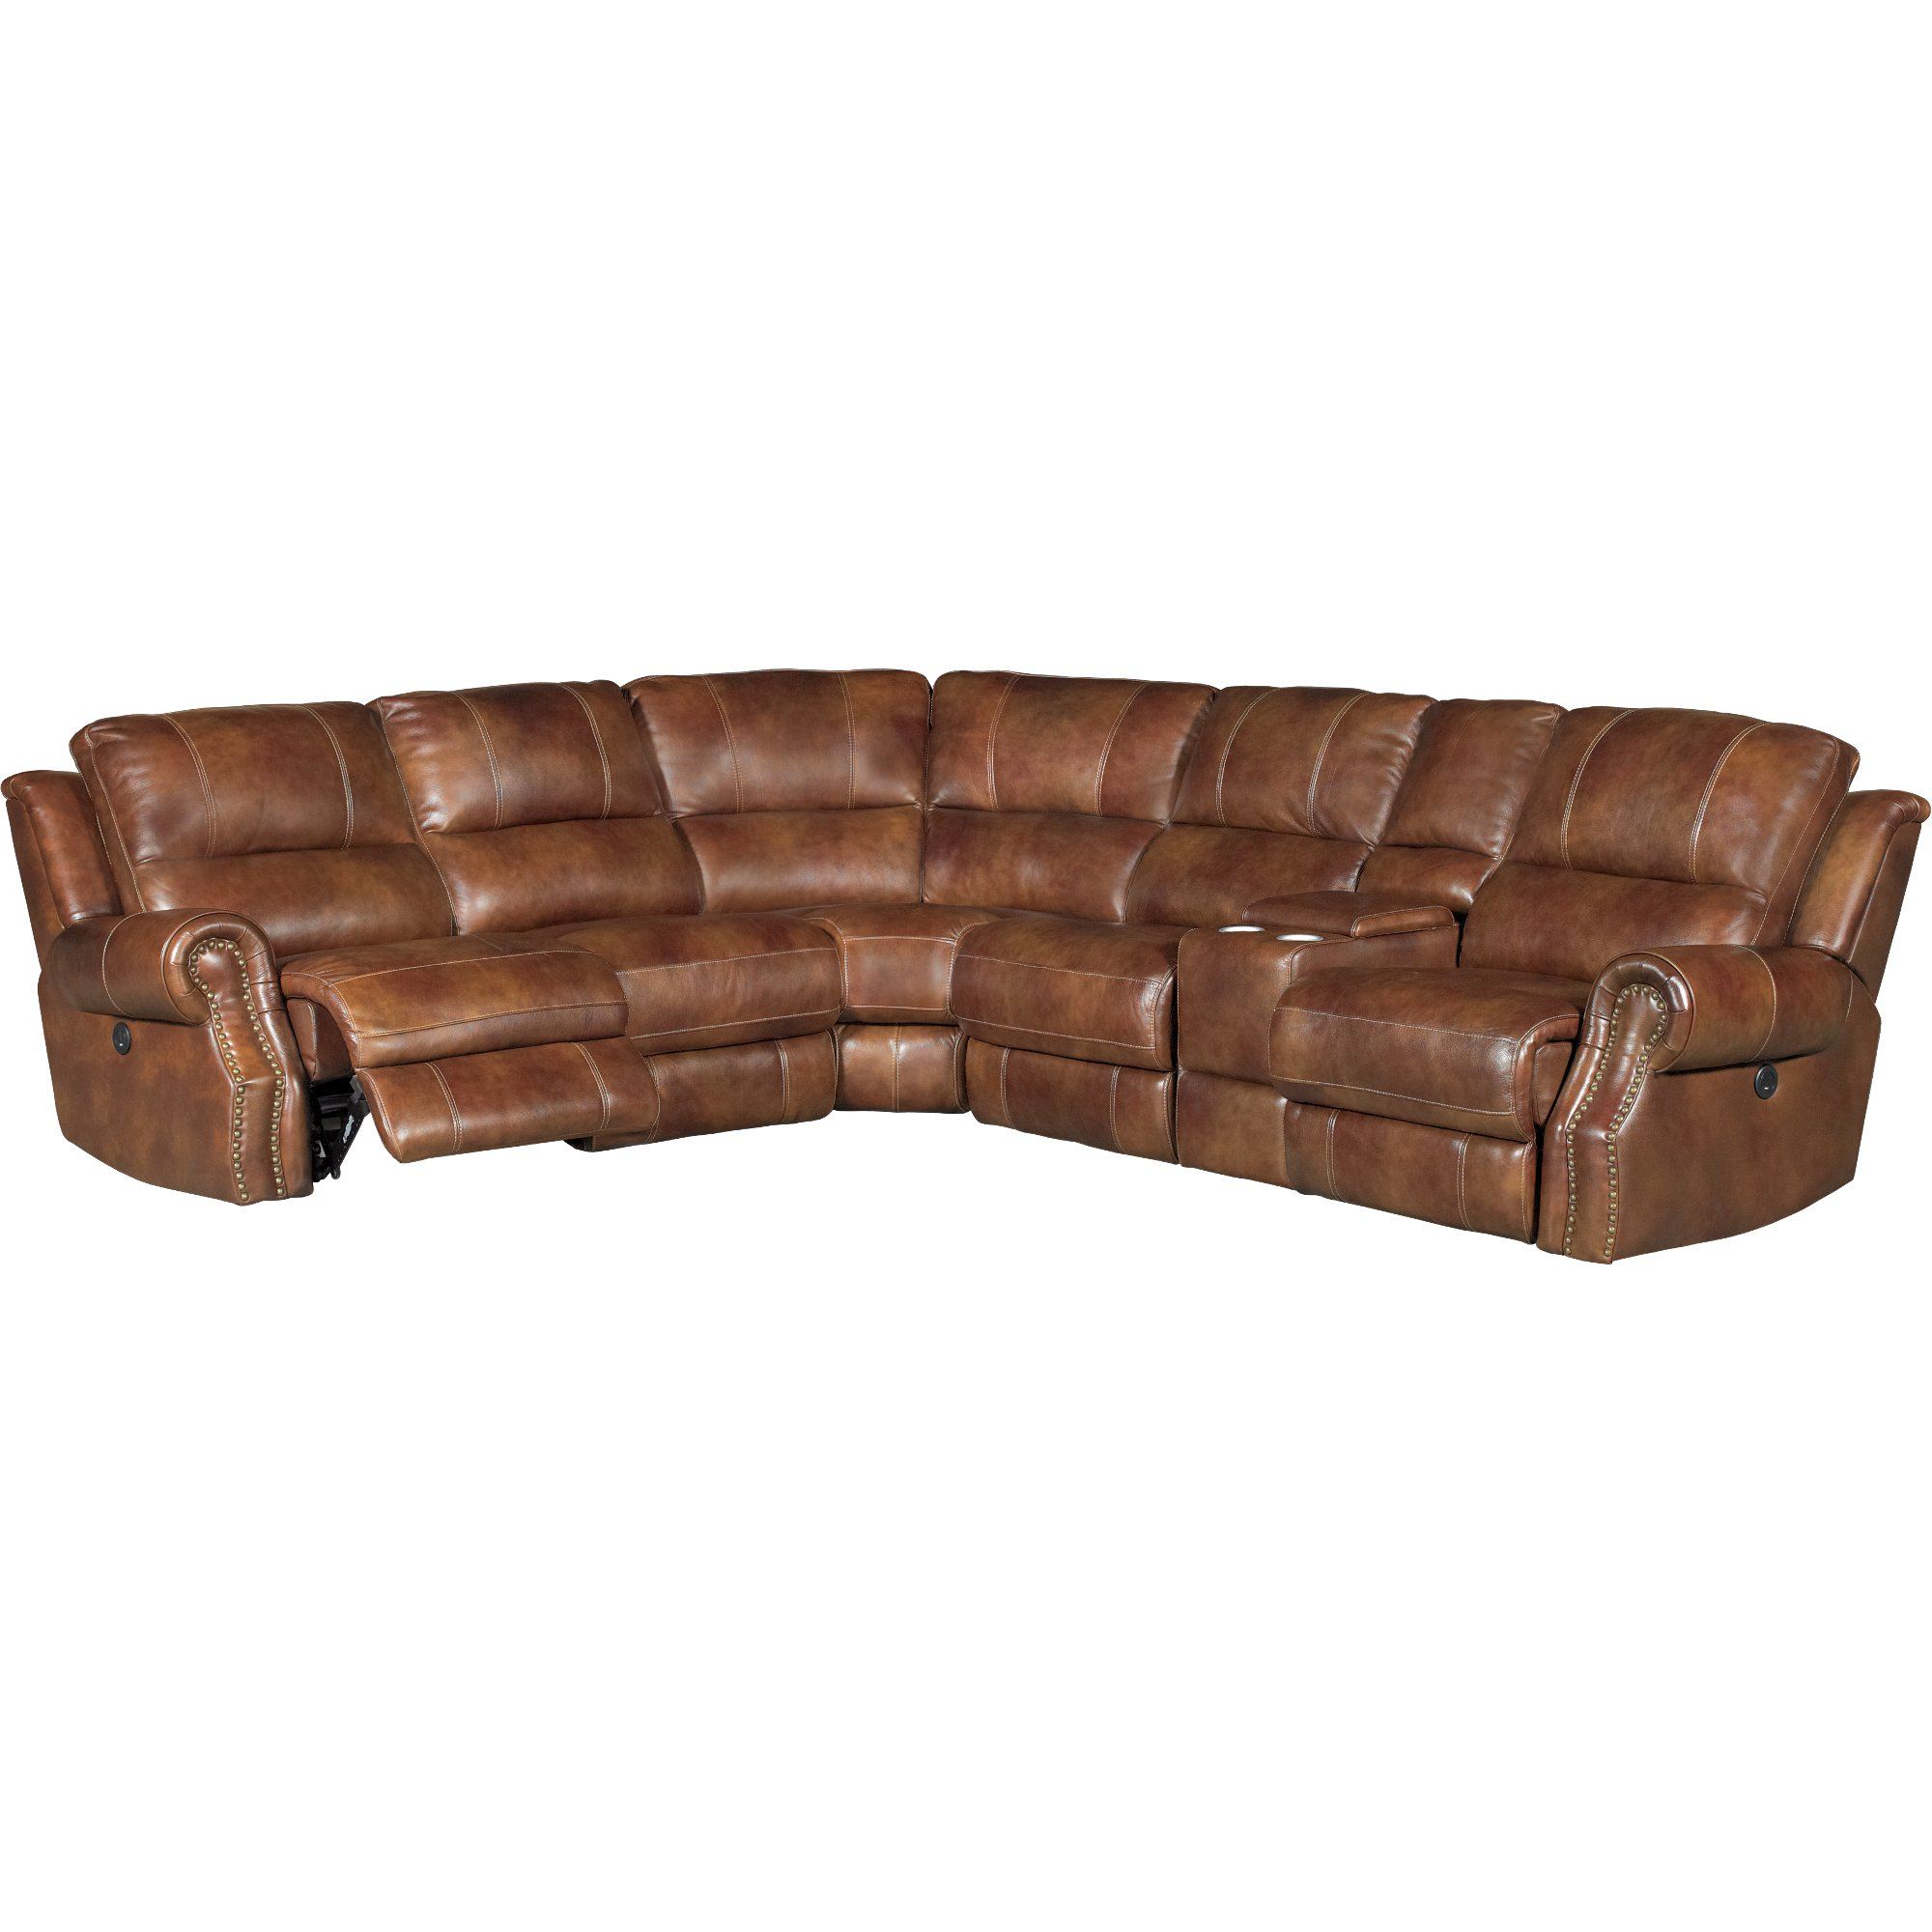 Leather Sectional Sofa Recliner Chestnut Brown 6 Piece Power Reclining Sectional Sofa Nailhead